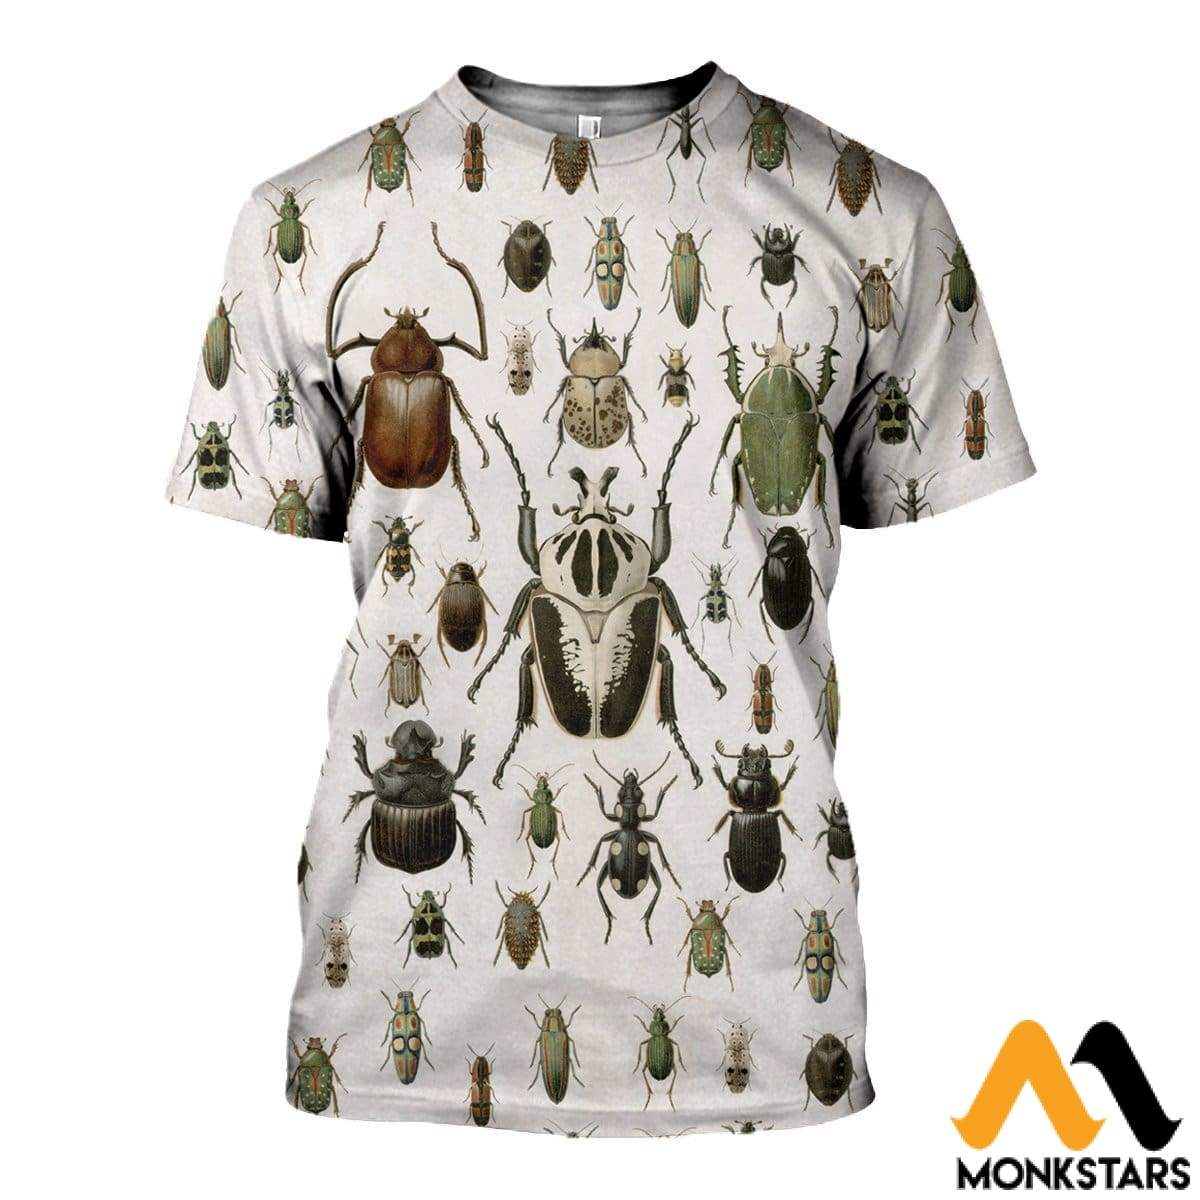 3D All Over Printed Vintage Insect Shirts And Shorts T-Shirt / Xs Clothes